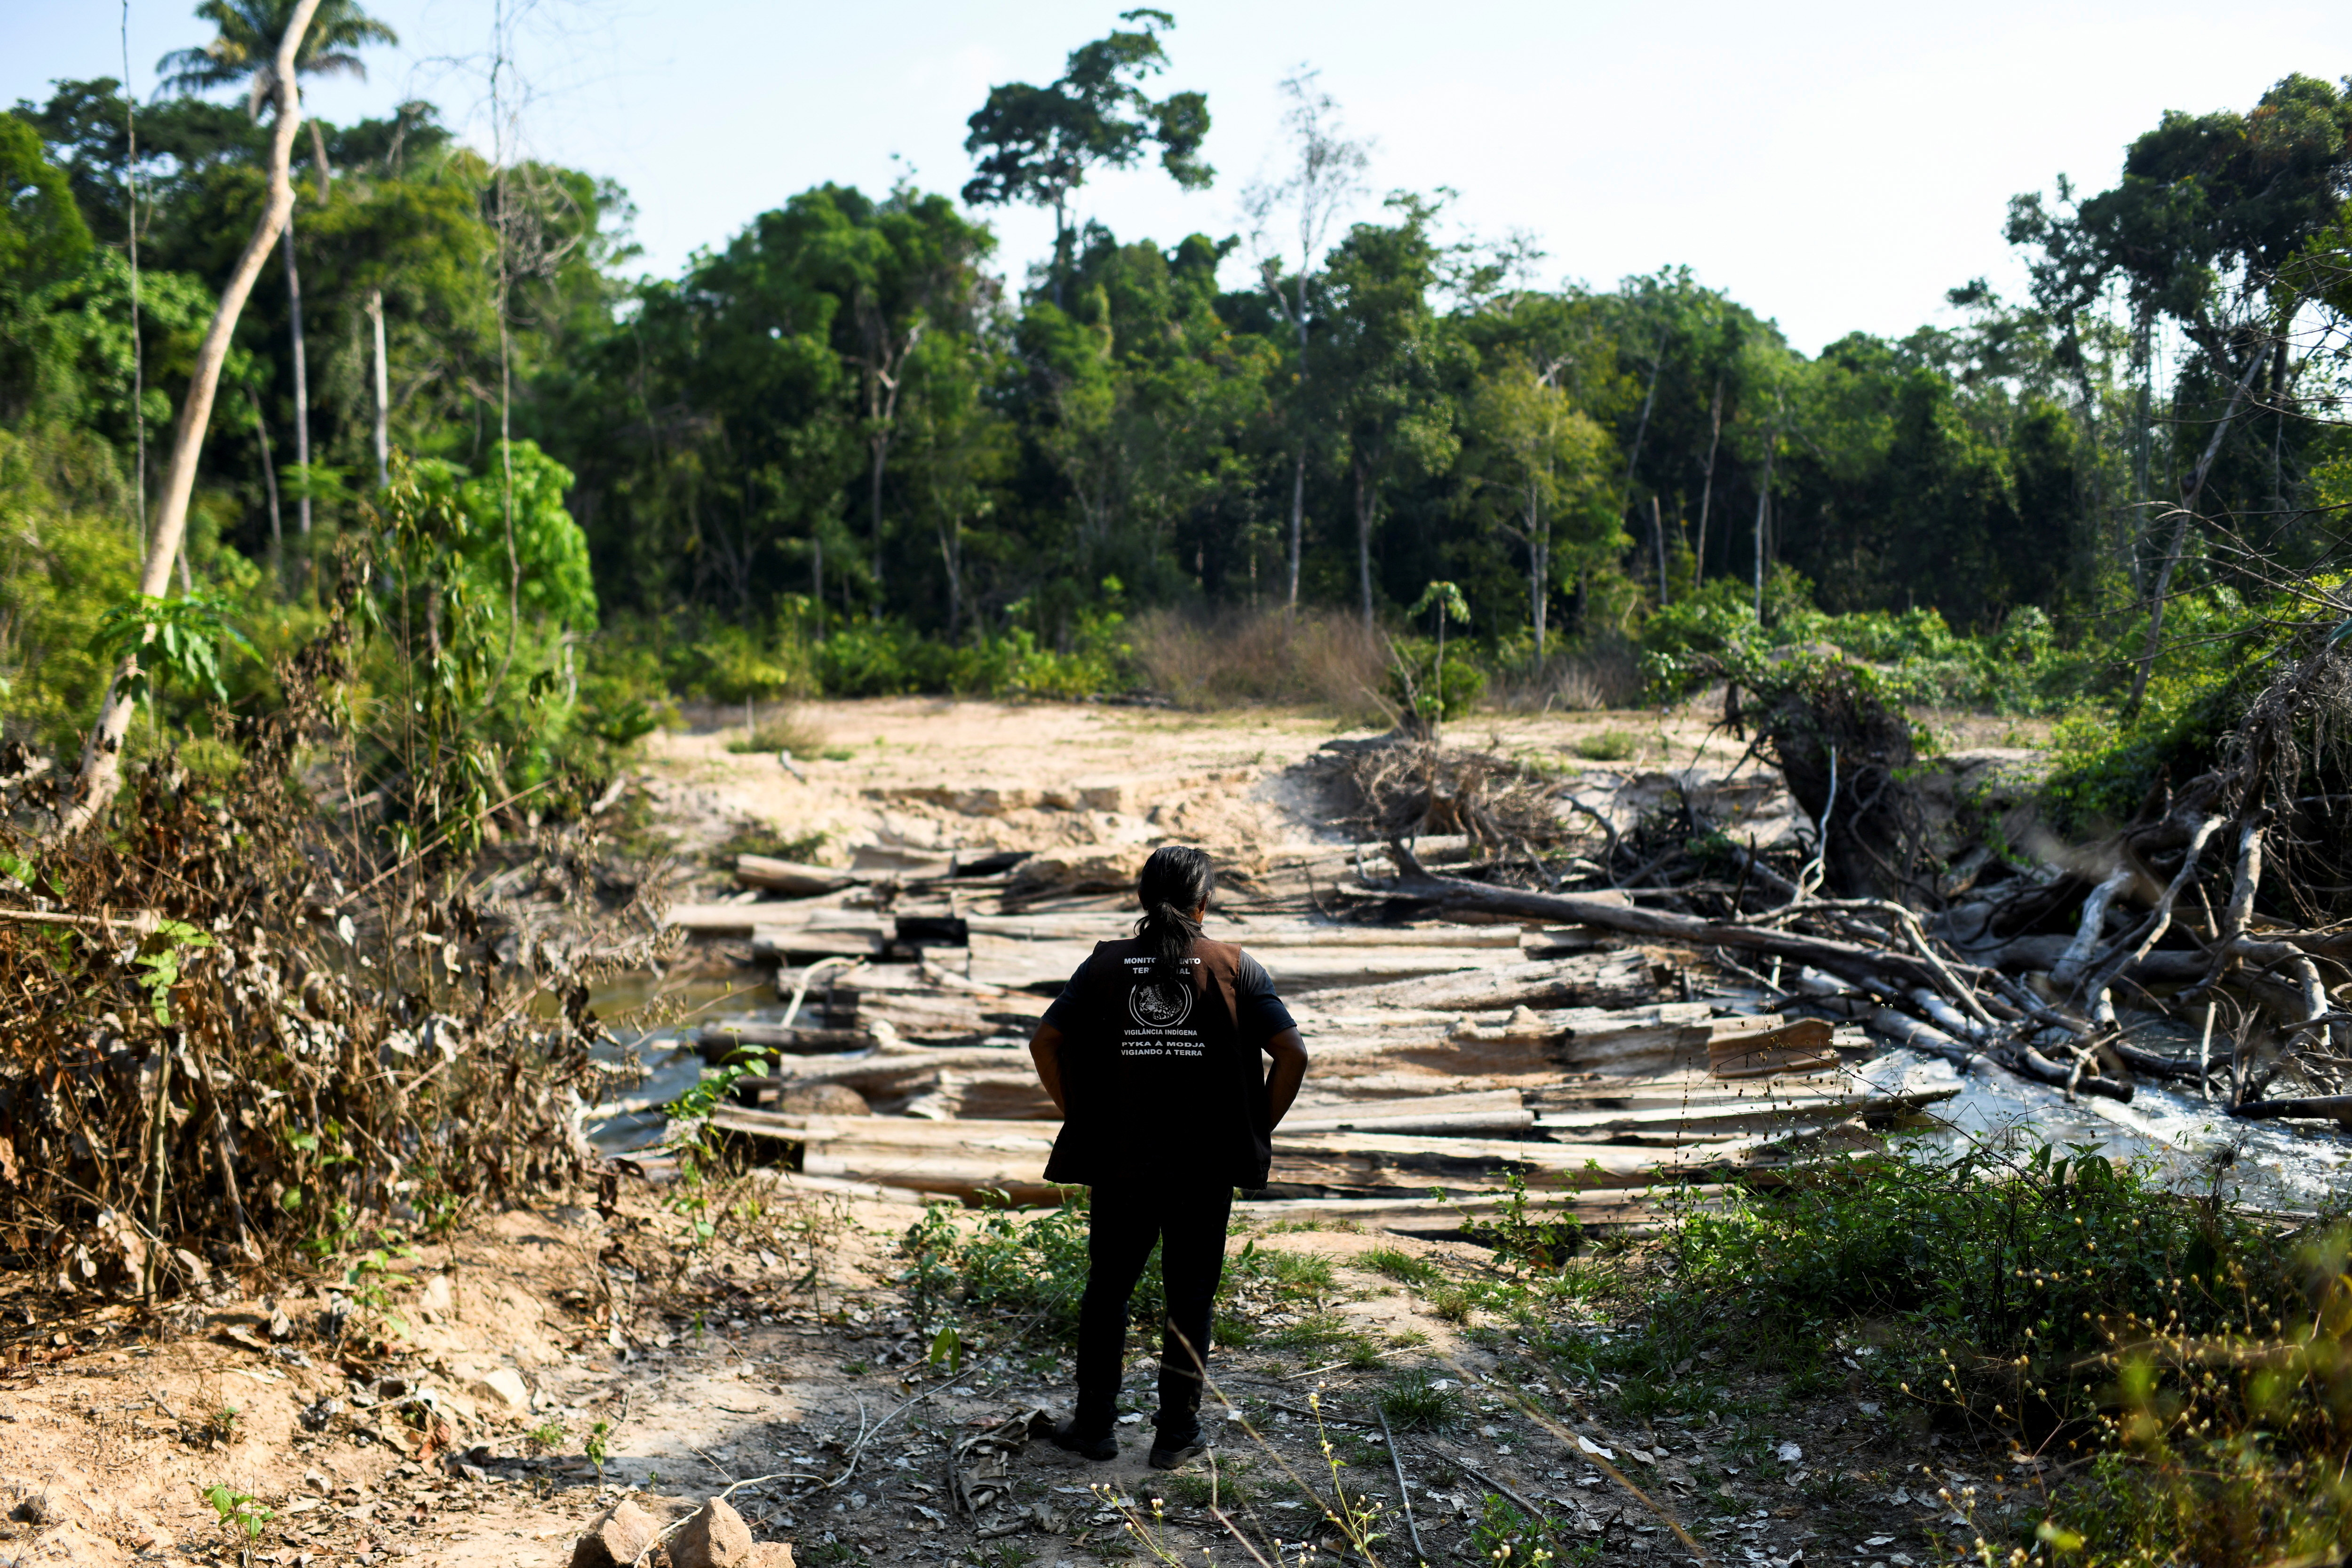 Pahnin Mekragnotire, a 40-years-old indigenous man of the Kayapo tribe, observes logs left by loggers during a surveillance patrol the Menkragnoti Indigenous Land to defend their territory against attacks by loggers and miners at the Krimej village in southwestern Para state, Brazil